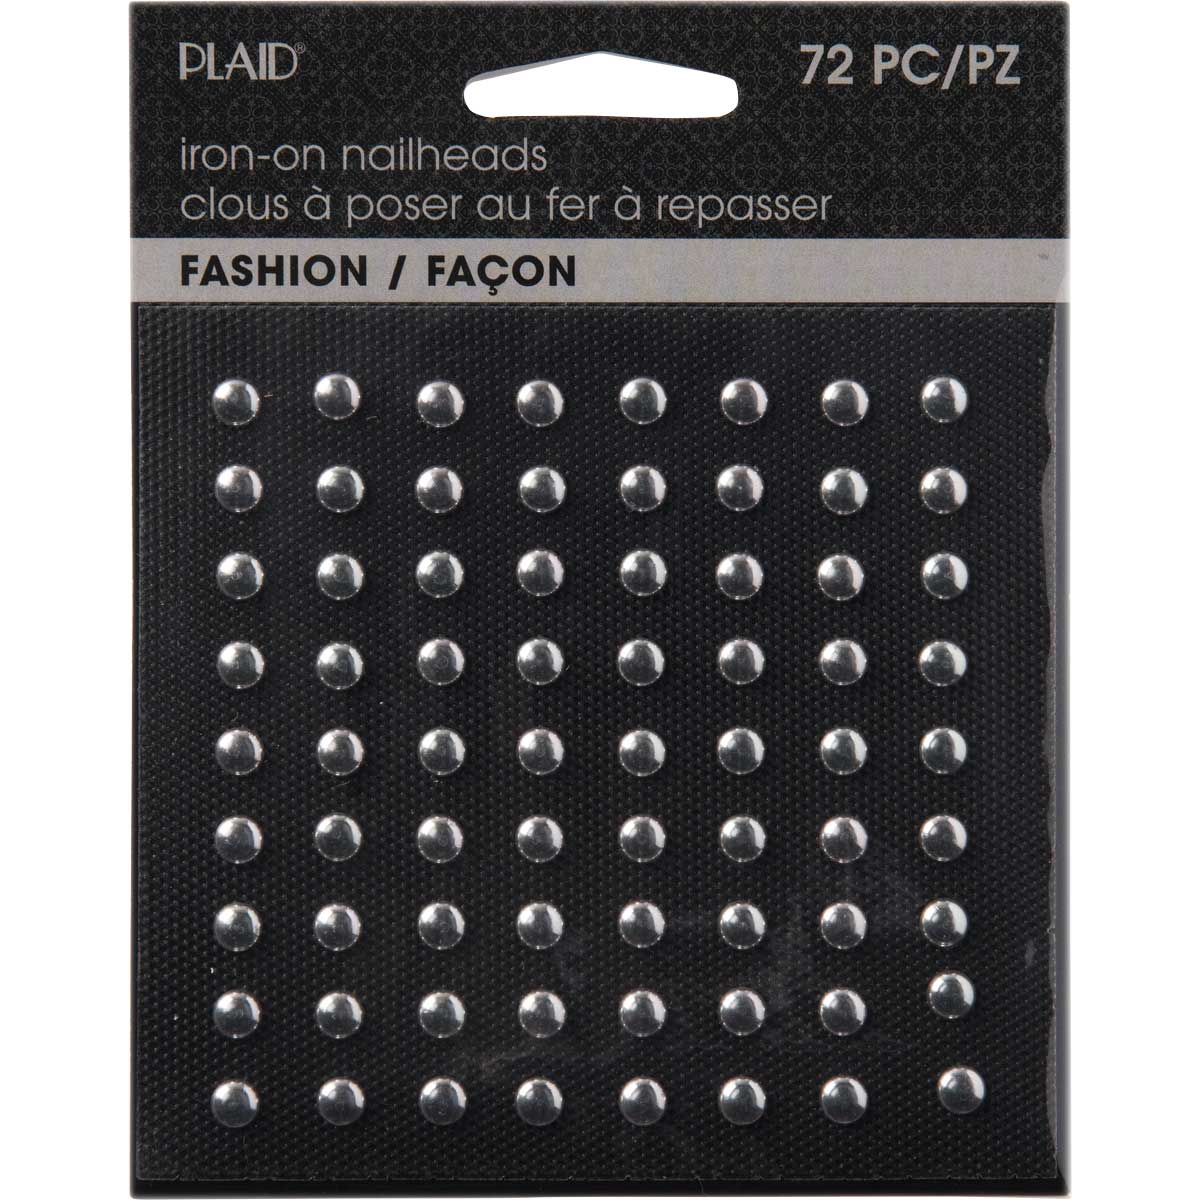 Plaid ® Hot Fix Nailhead Iron-Ons - Round Shiny Silver